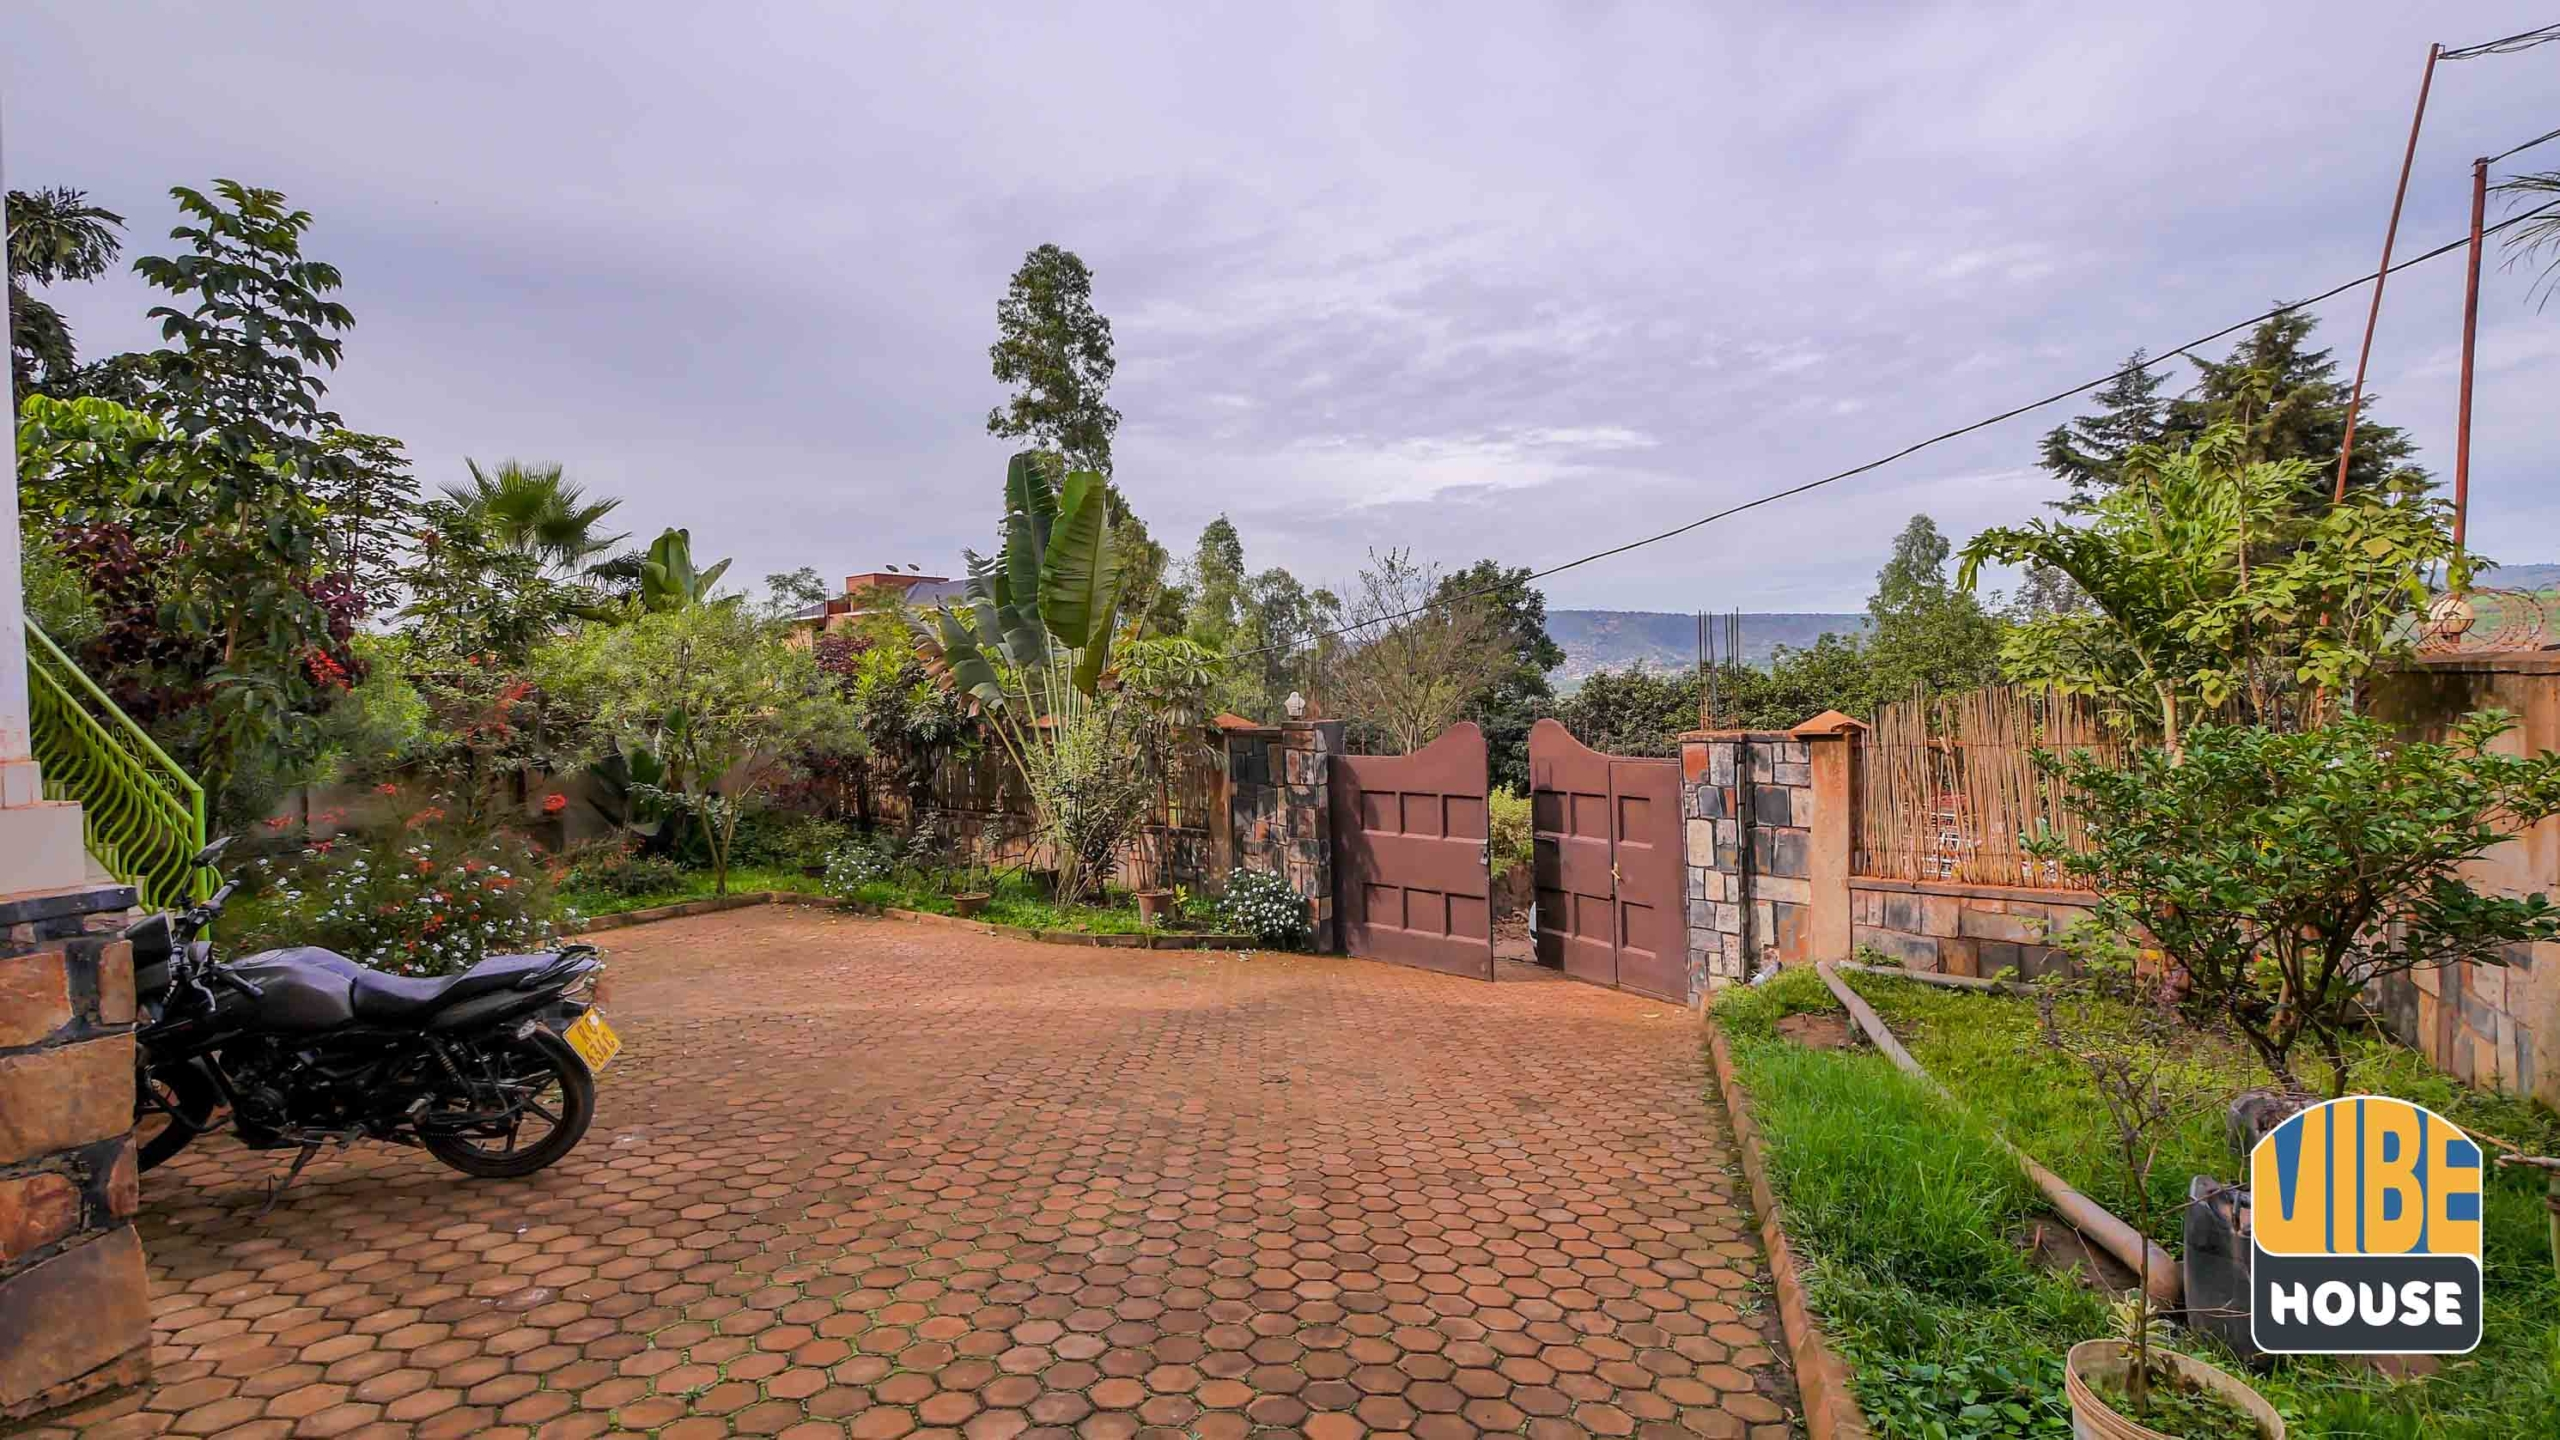 House For Sale Kigali Kagugu 19 03 28 1 4 scaled